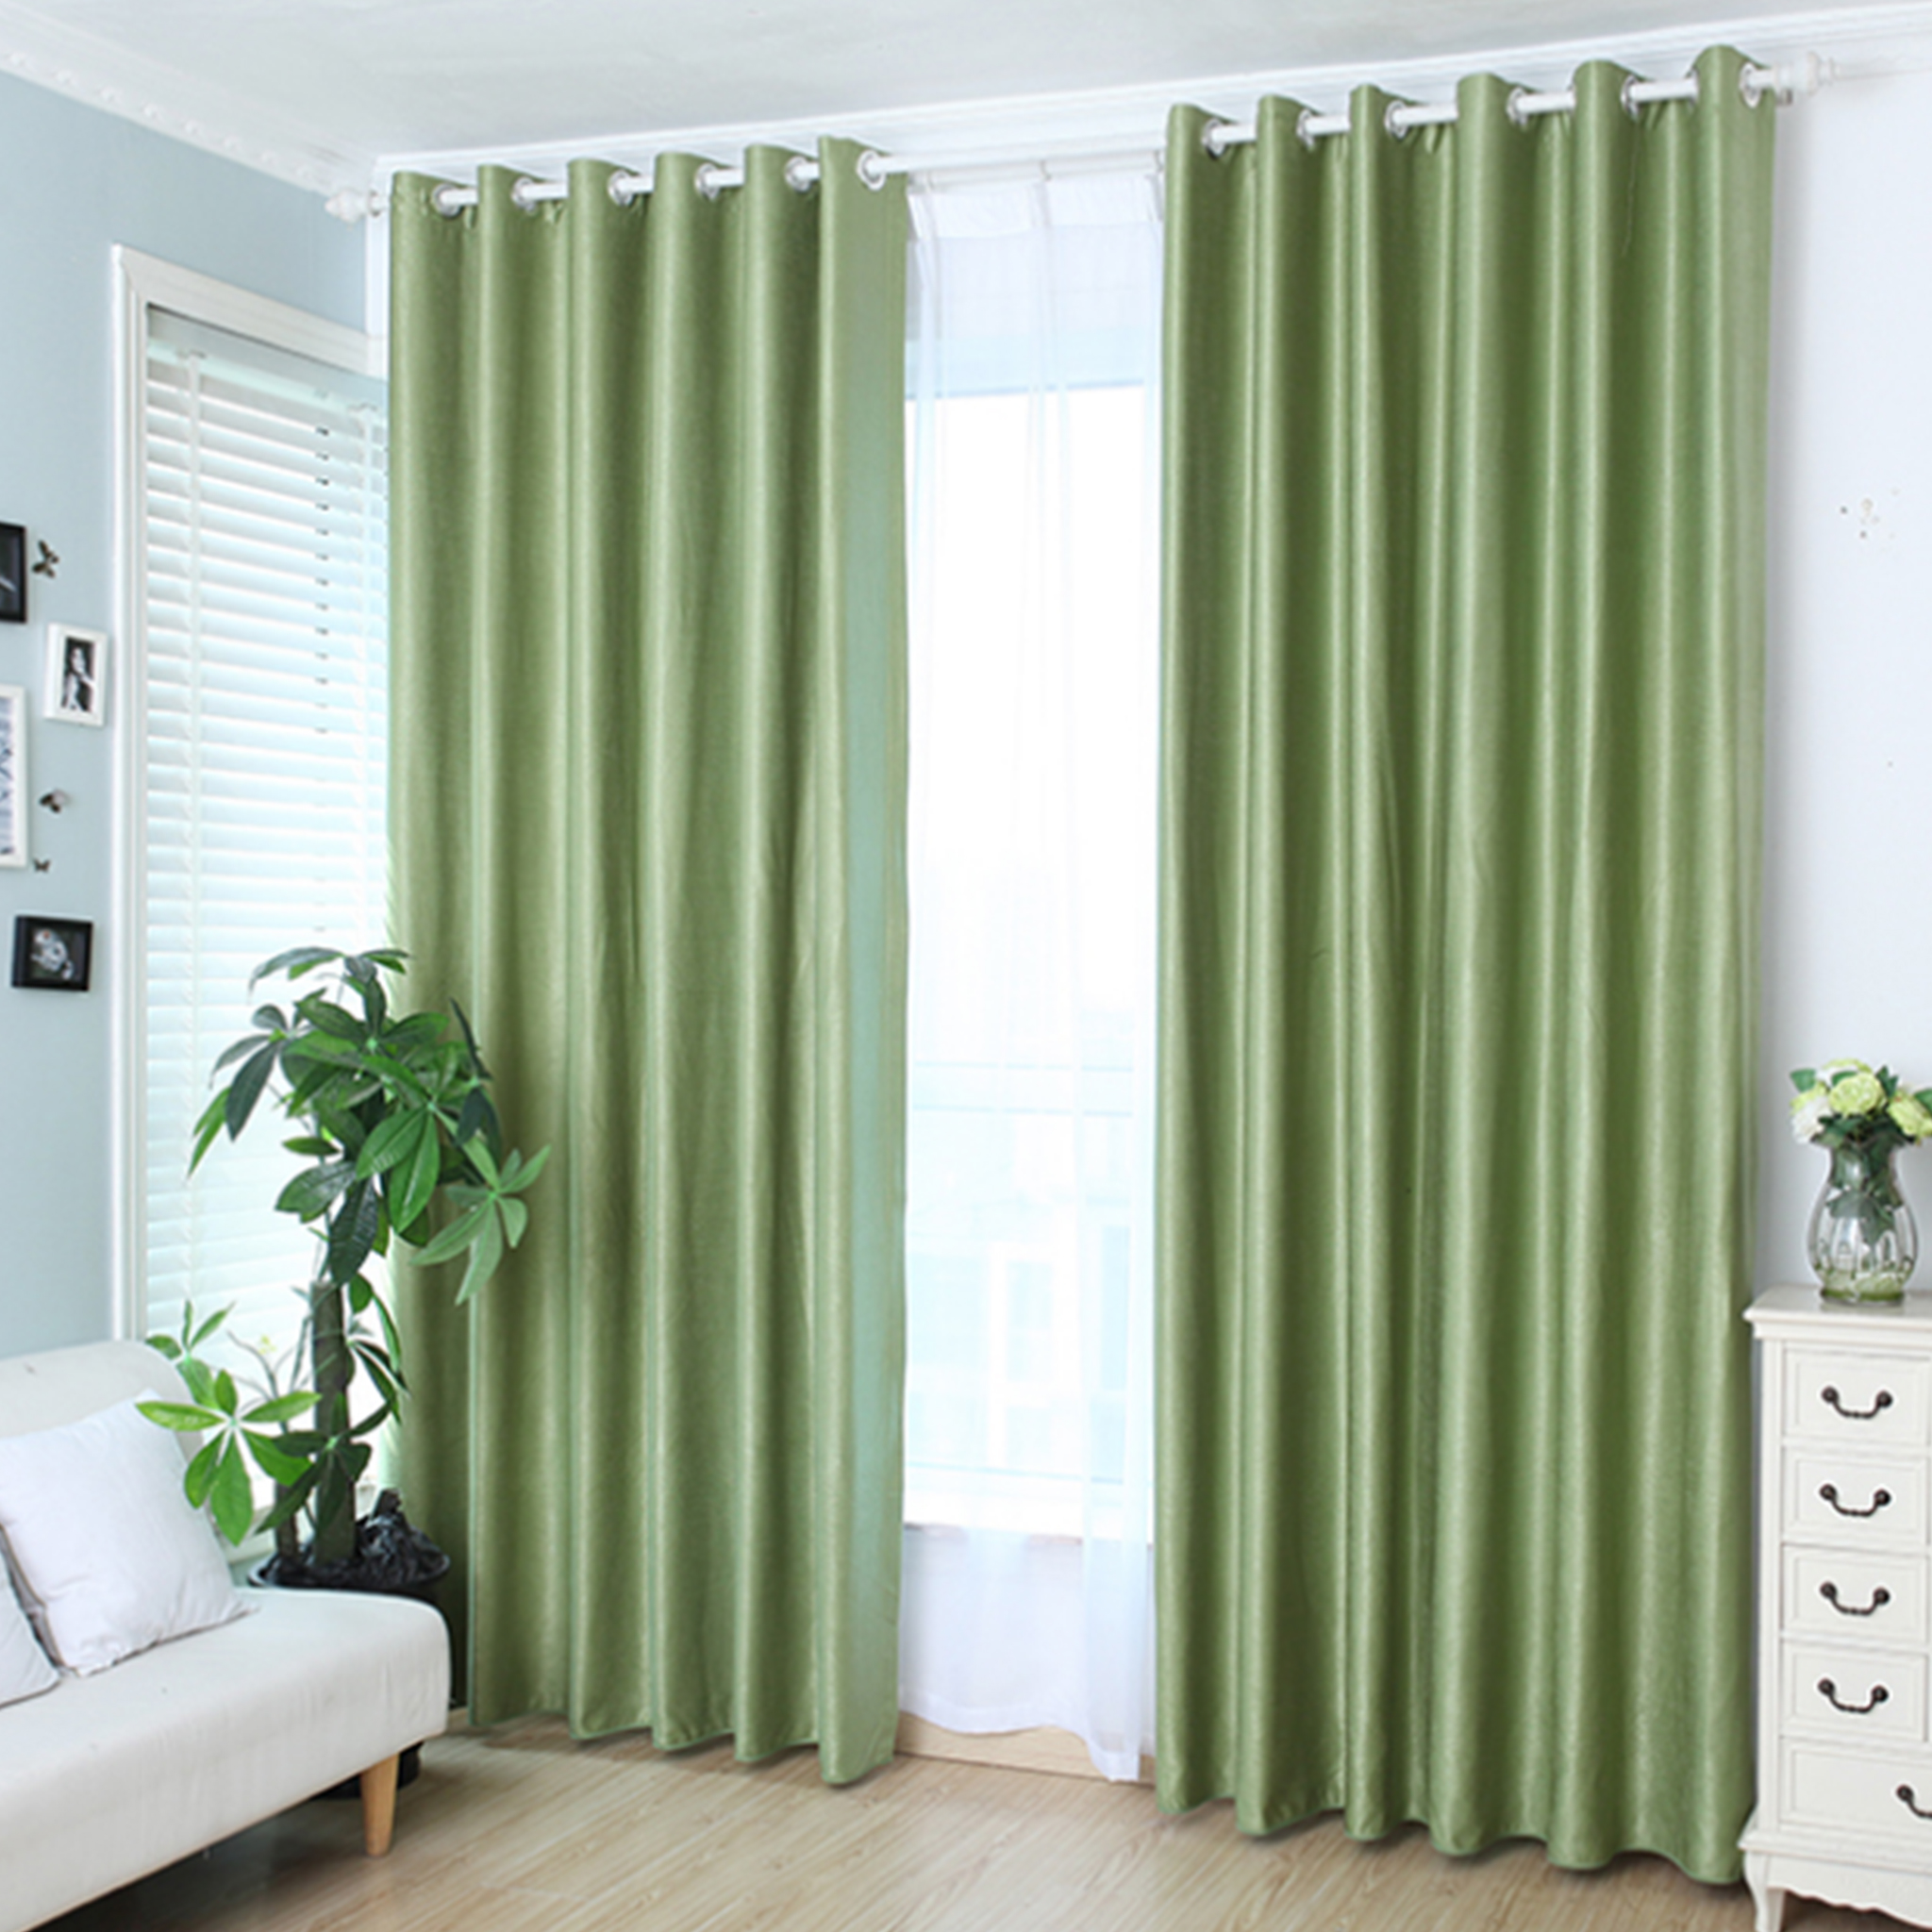 styles shower trends image and curtain living quality modern appealing nursery room of best white in astonishing bedroom blue curtains concept great sxs cute boy